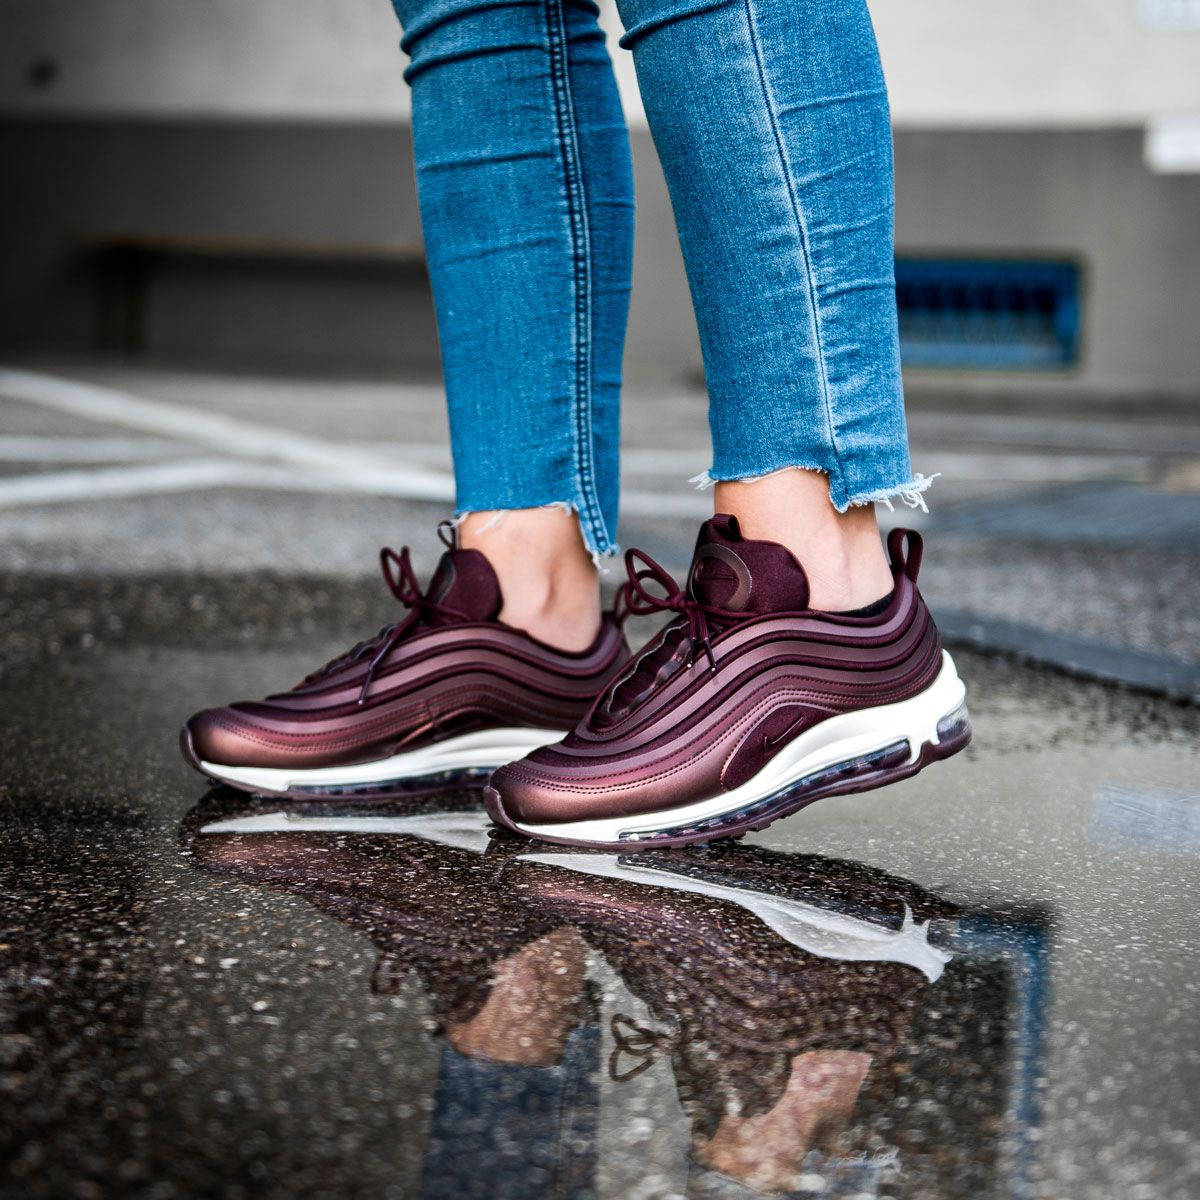 Nike Women S Air Max 97 Ultra Another One For The Ladies Slick And A Bit Shiny In This Mahoganey Colorway No Nike Air Max 97 Sneaker Boots Sneakers Fashion